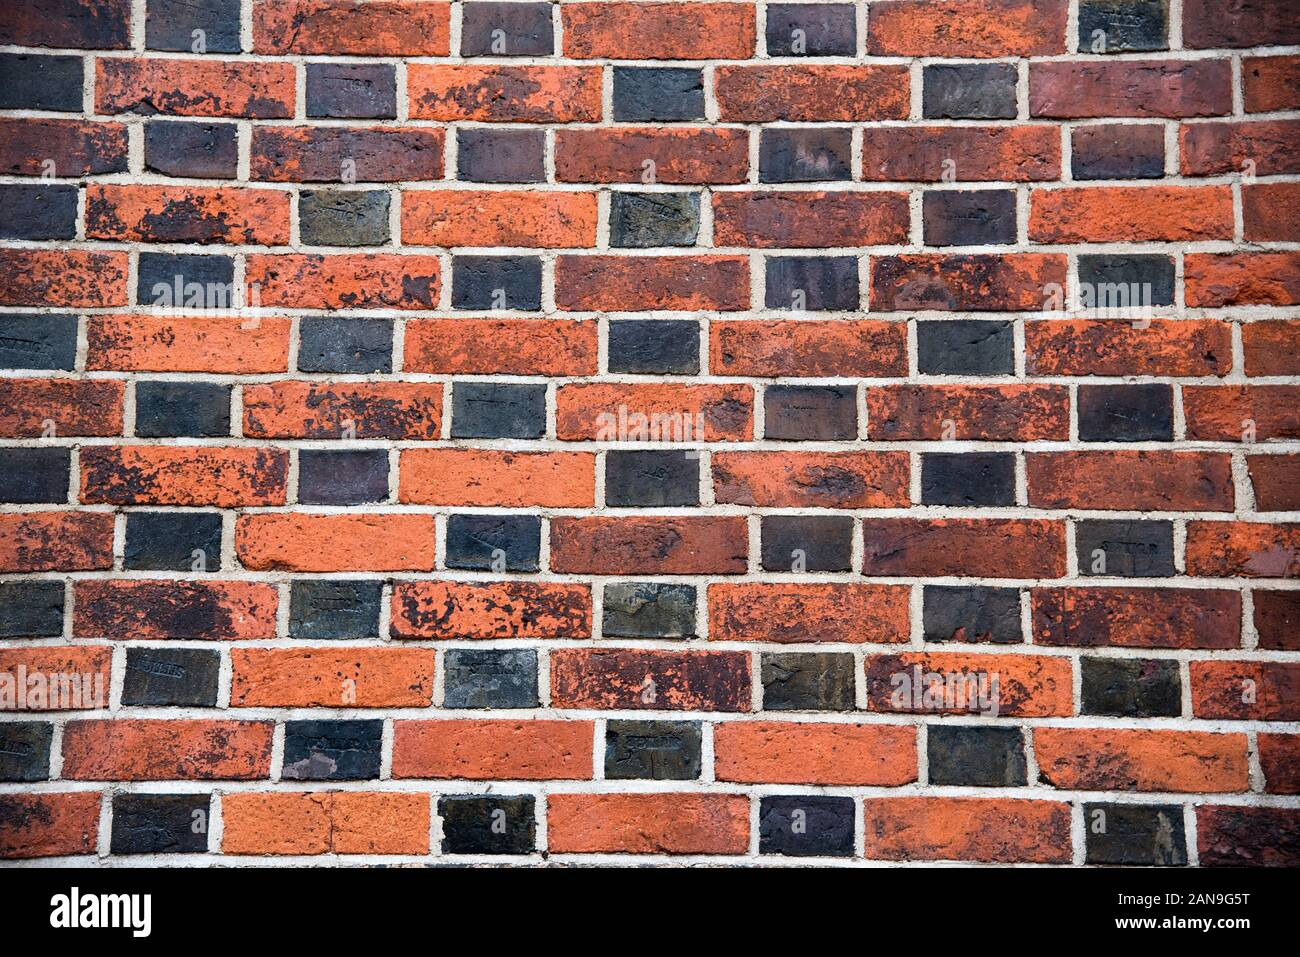 Brick wall background concept with chessboard pattern effect of black and brown bricks shot with wide angle lens Stock Photo